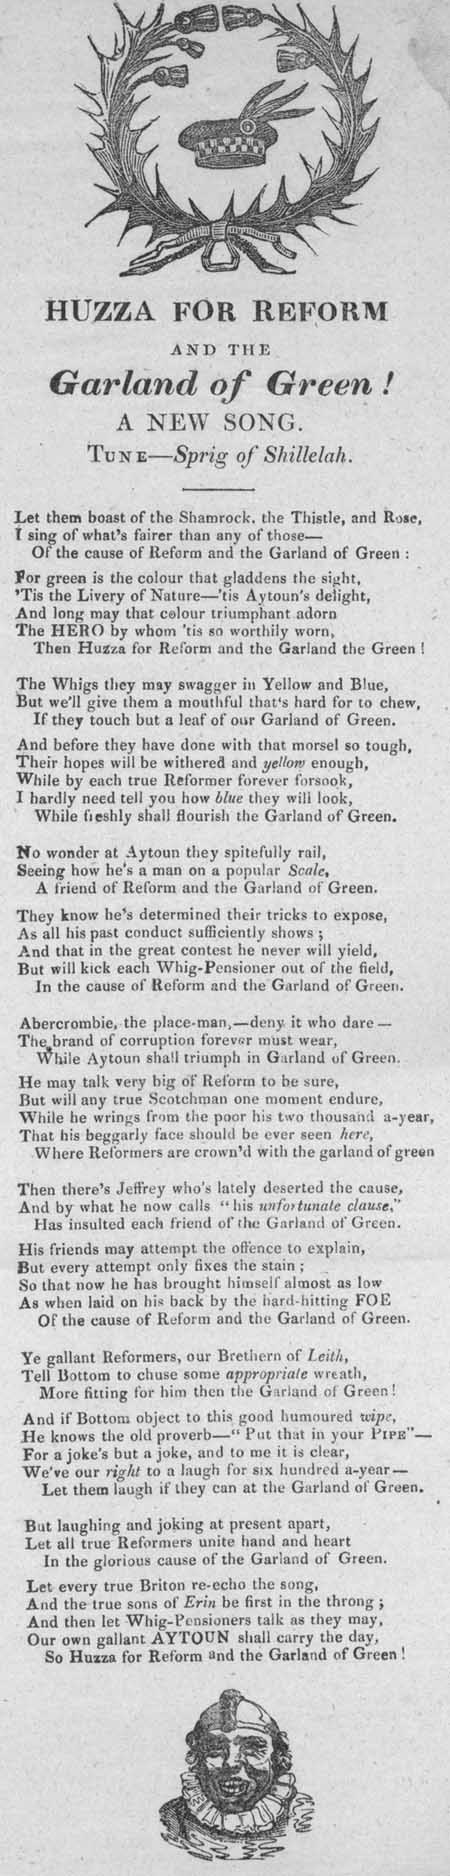 Broadside ballad entitled 'Huzza For Reform and the Garland of Green!'